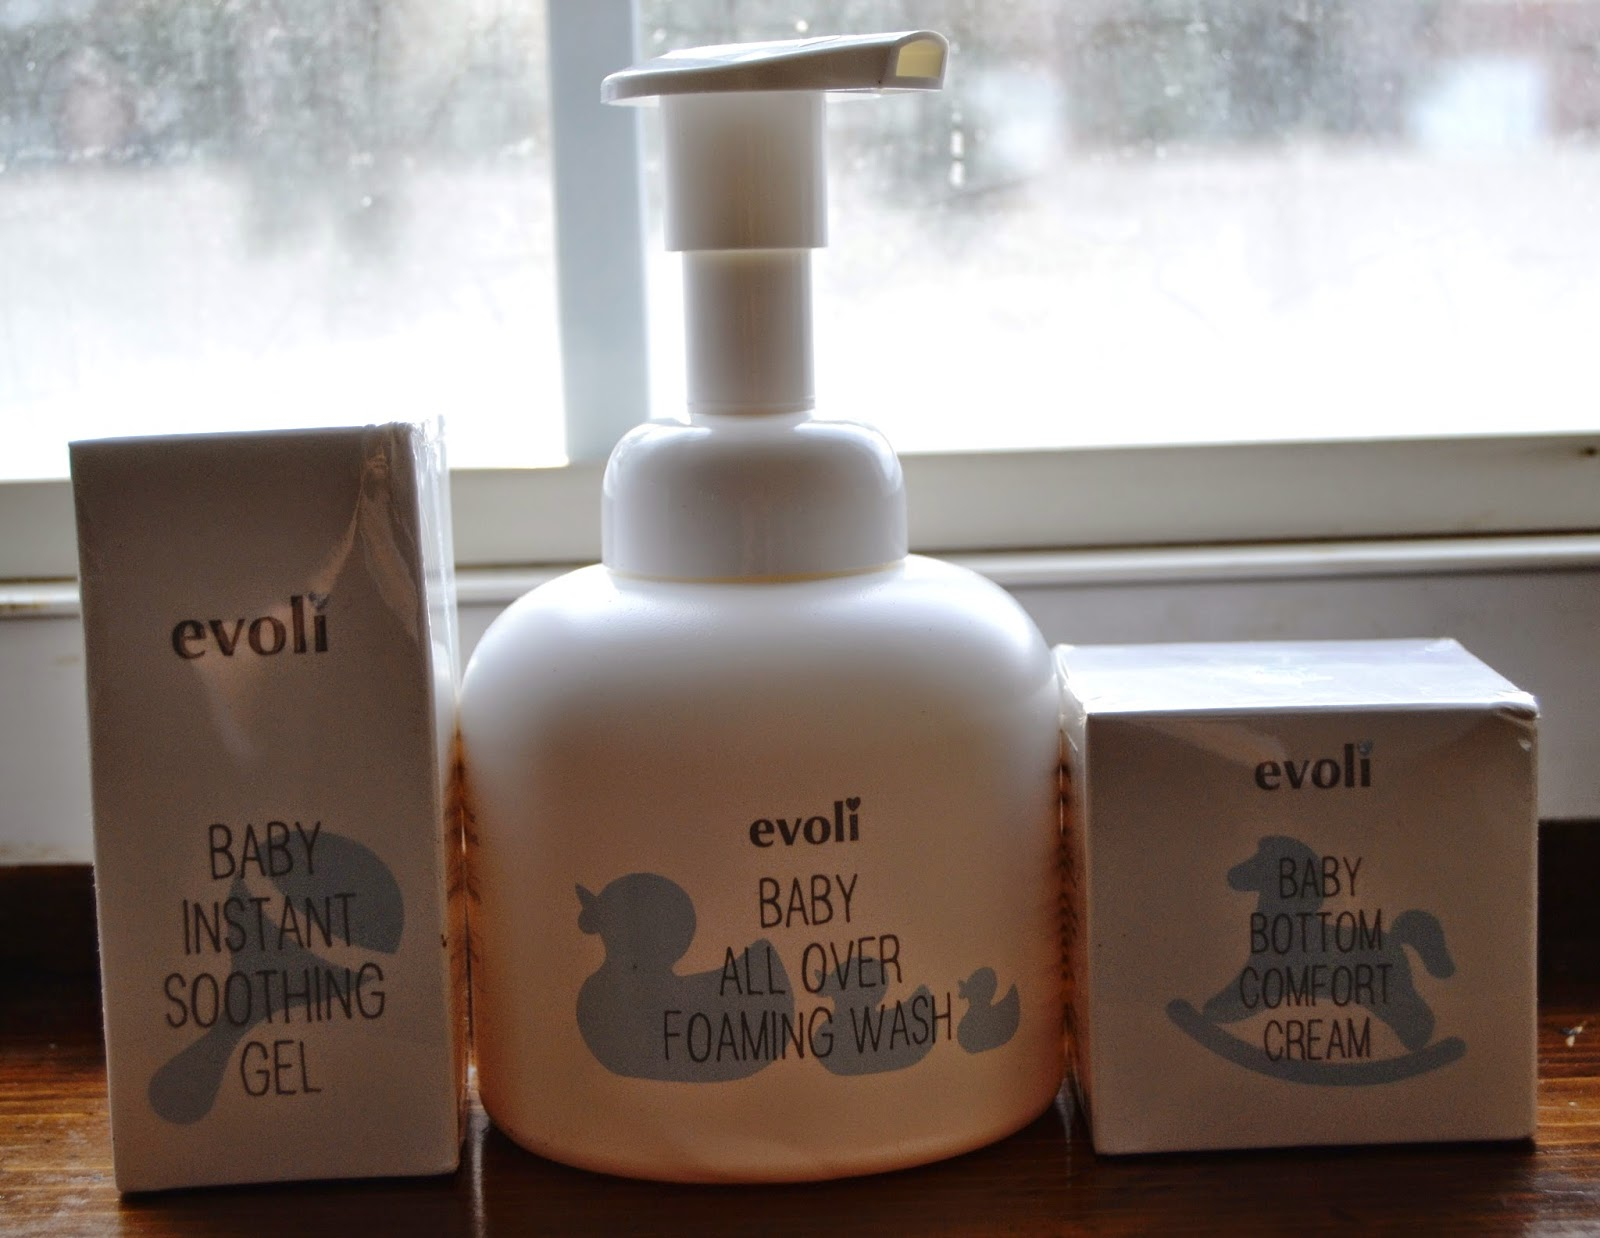 Evoli Body & Skincare